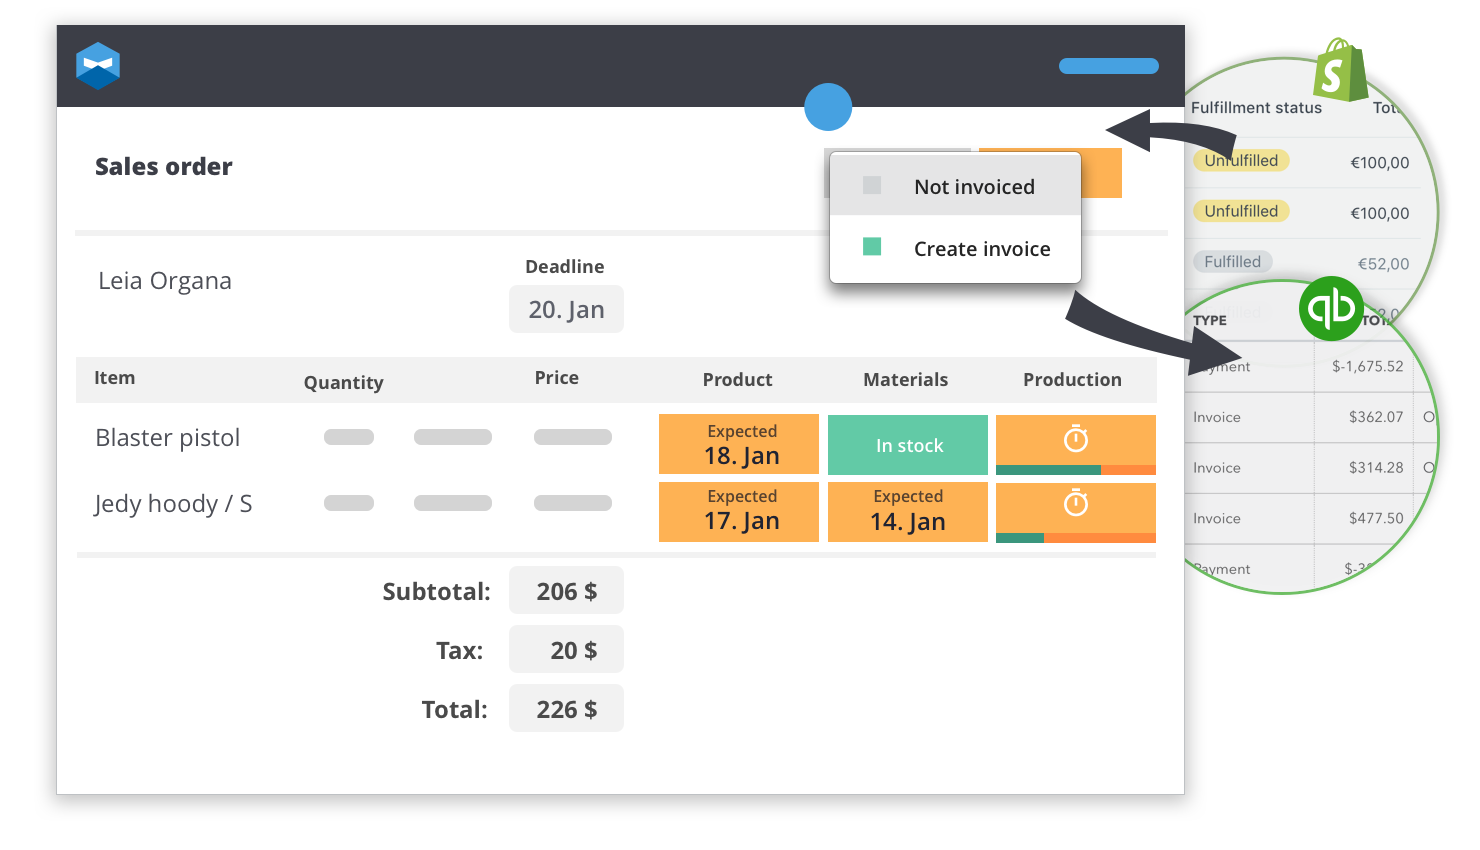 """Click """"Create invoice"""" in your Katana sales view and the invoice is automatically sent to your QuickBooks account. Once it's been done you'll see a pretty little icon to show the sync is complete. Simple as that."""